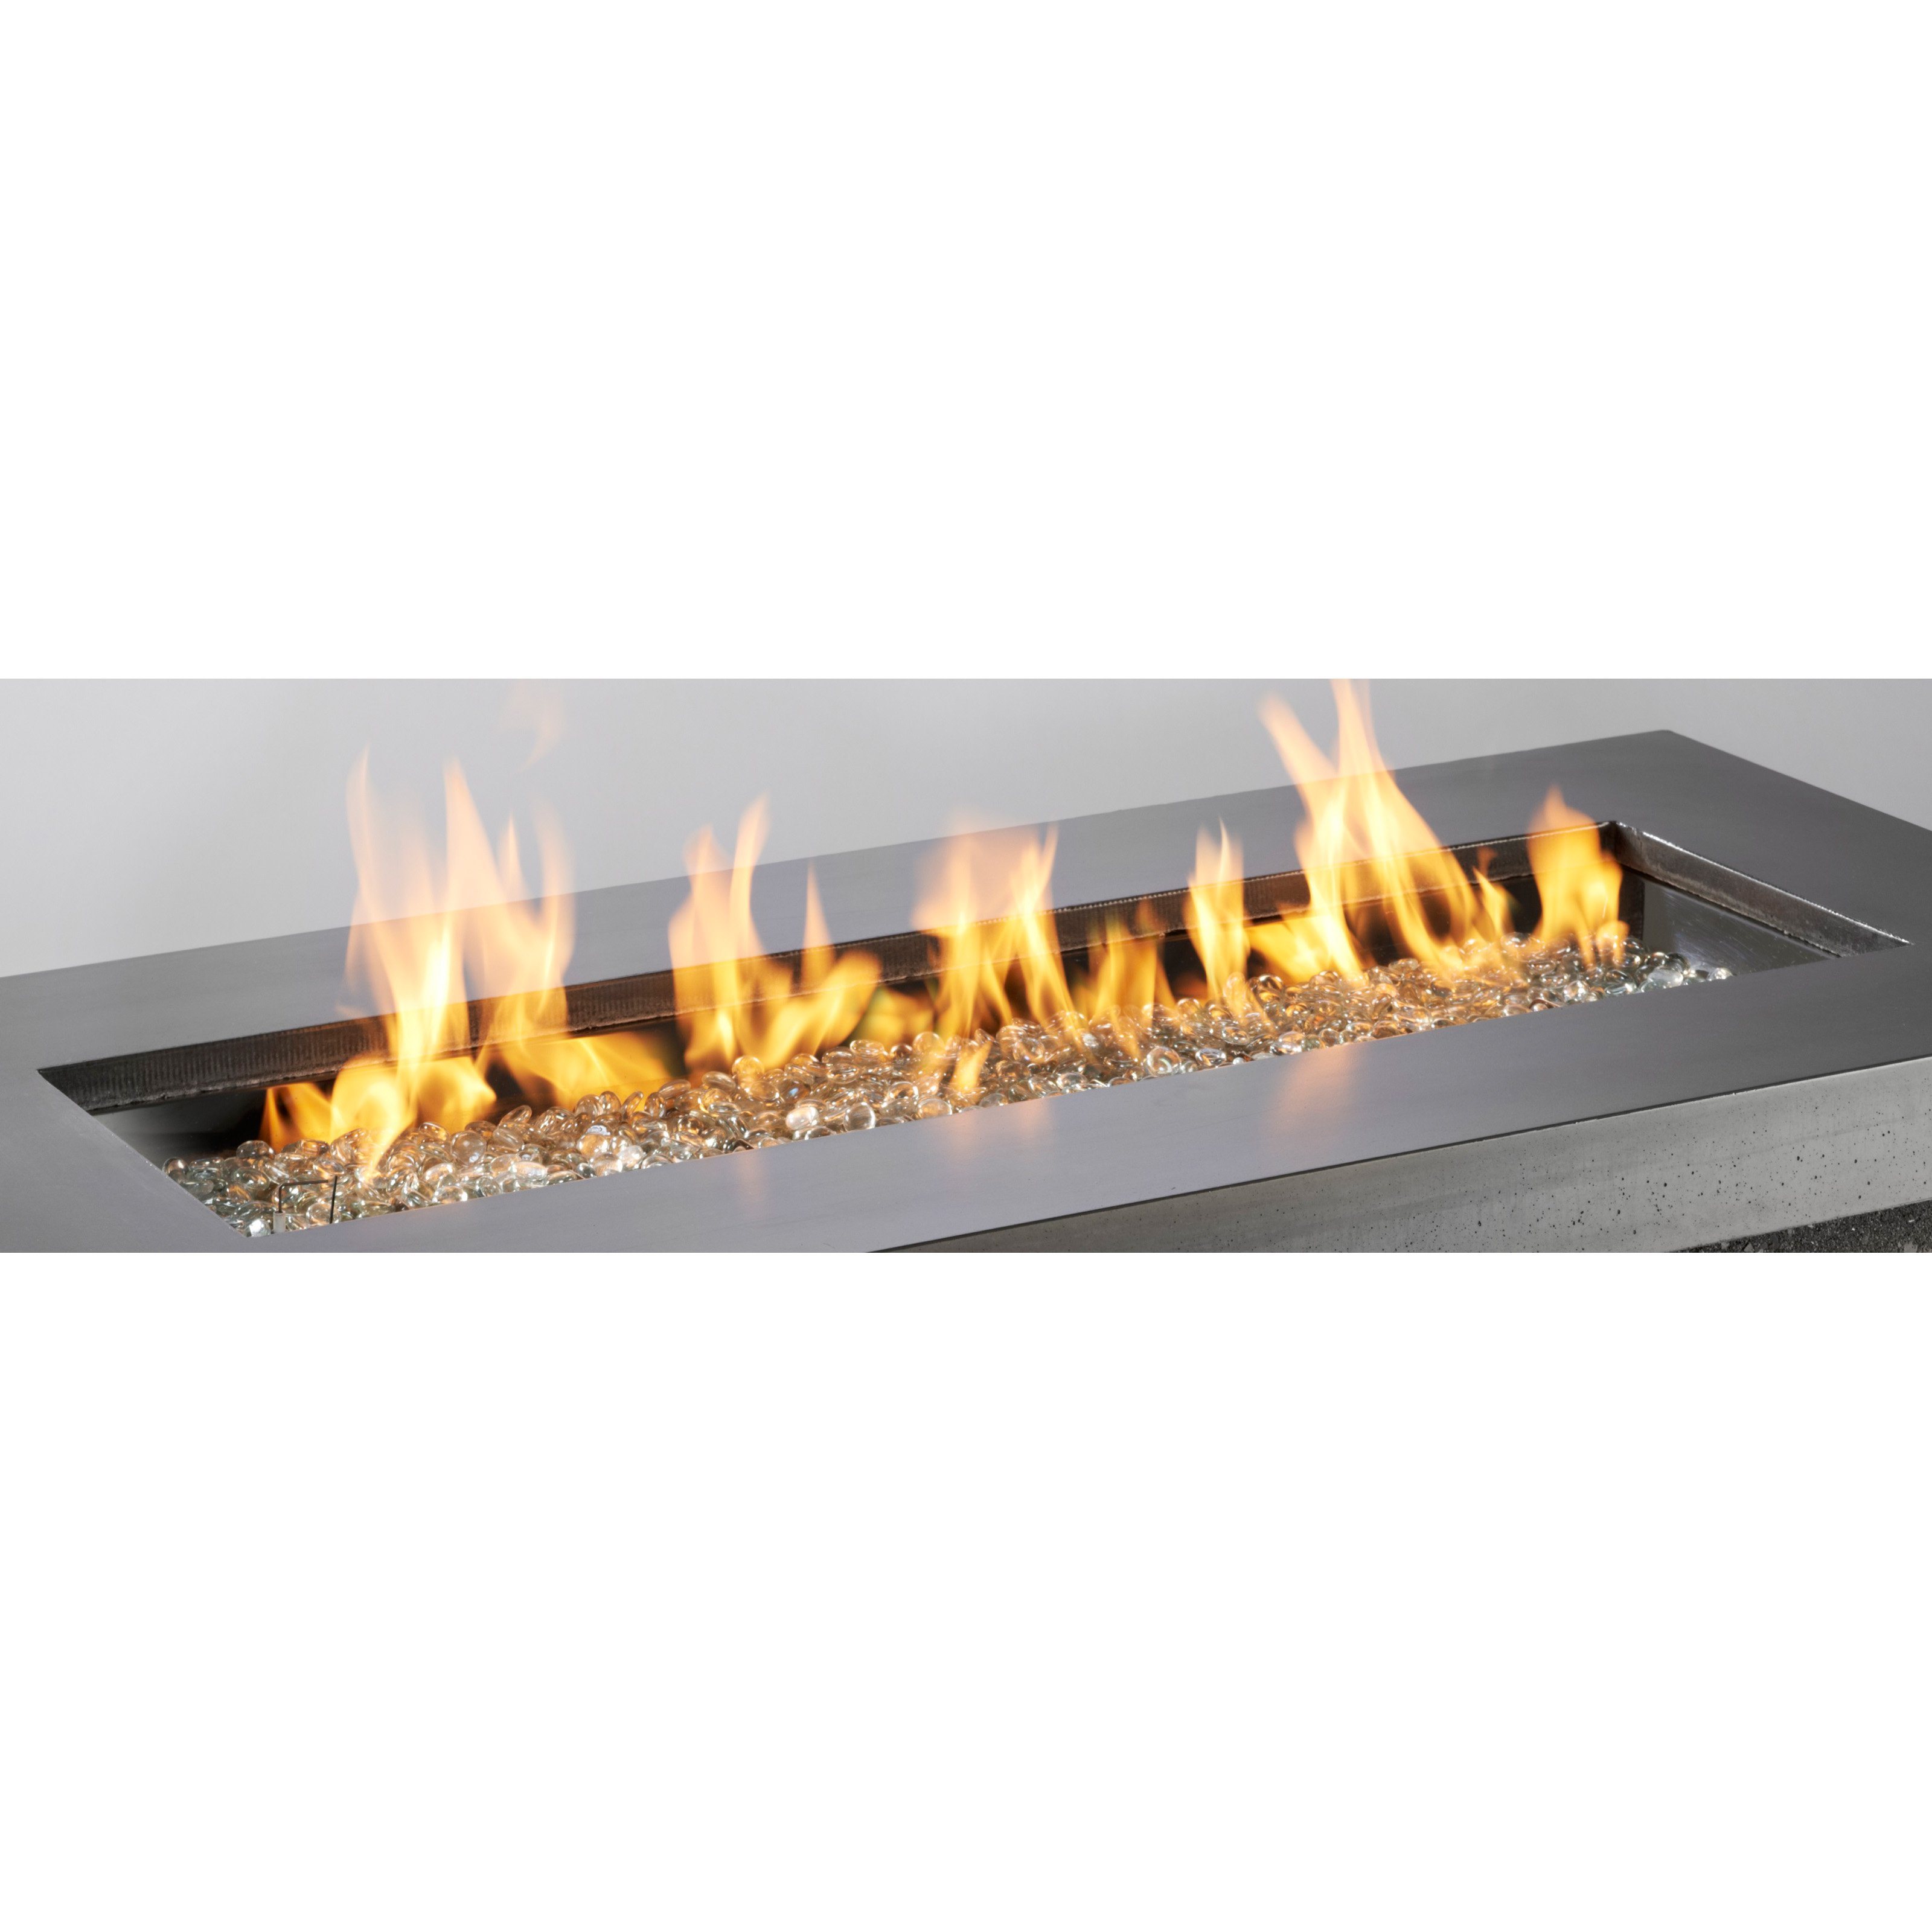 Outdoor GreatRoom 12 x 42 Burner with Glass Fire Gems